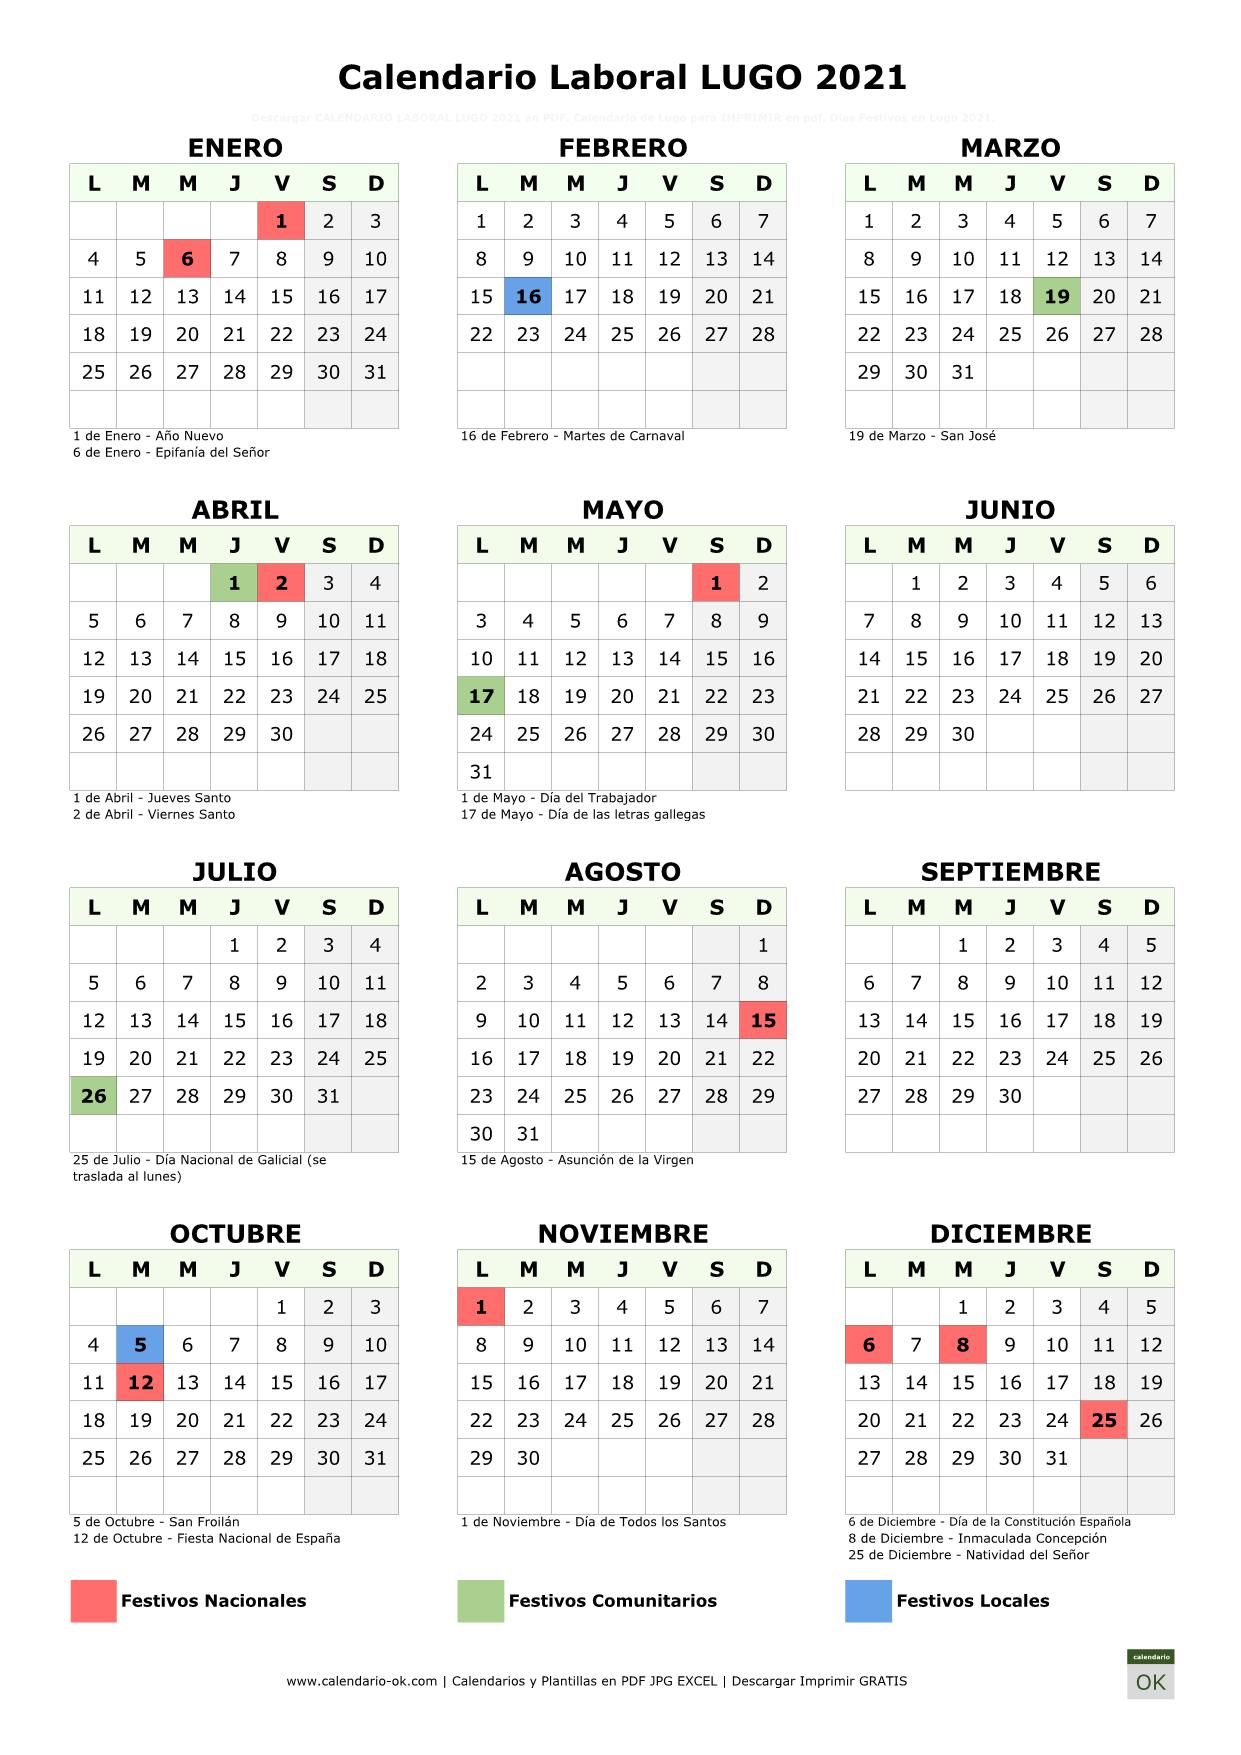 Calendario Laboral Lugo 2021 vertical